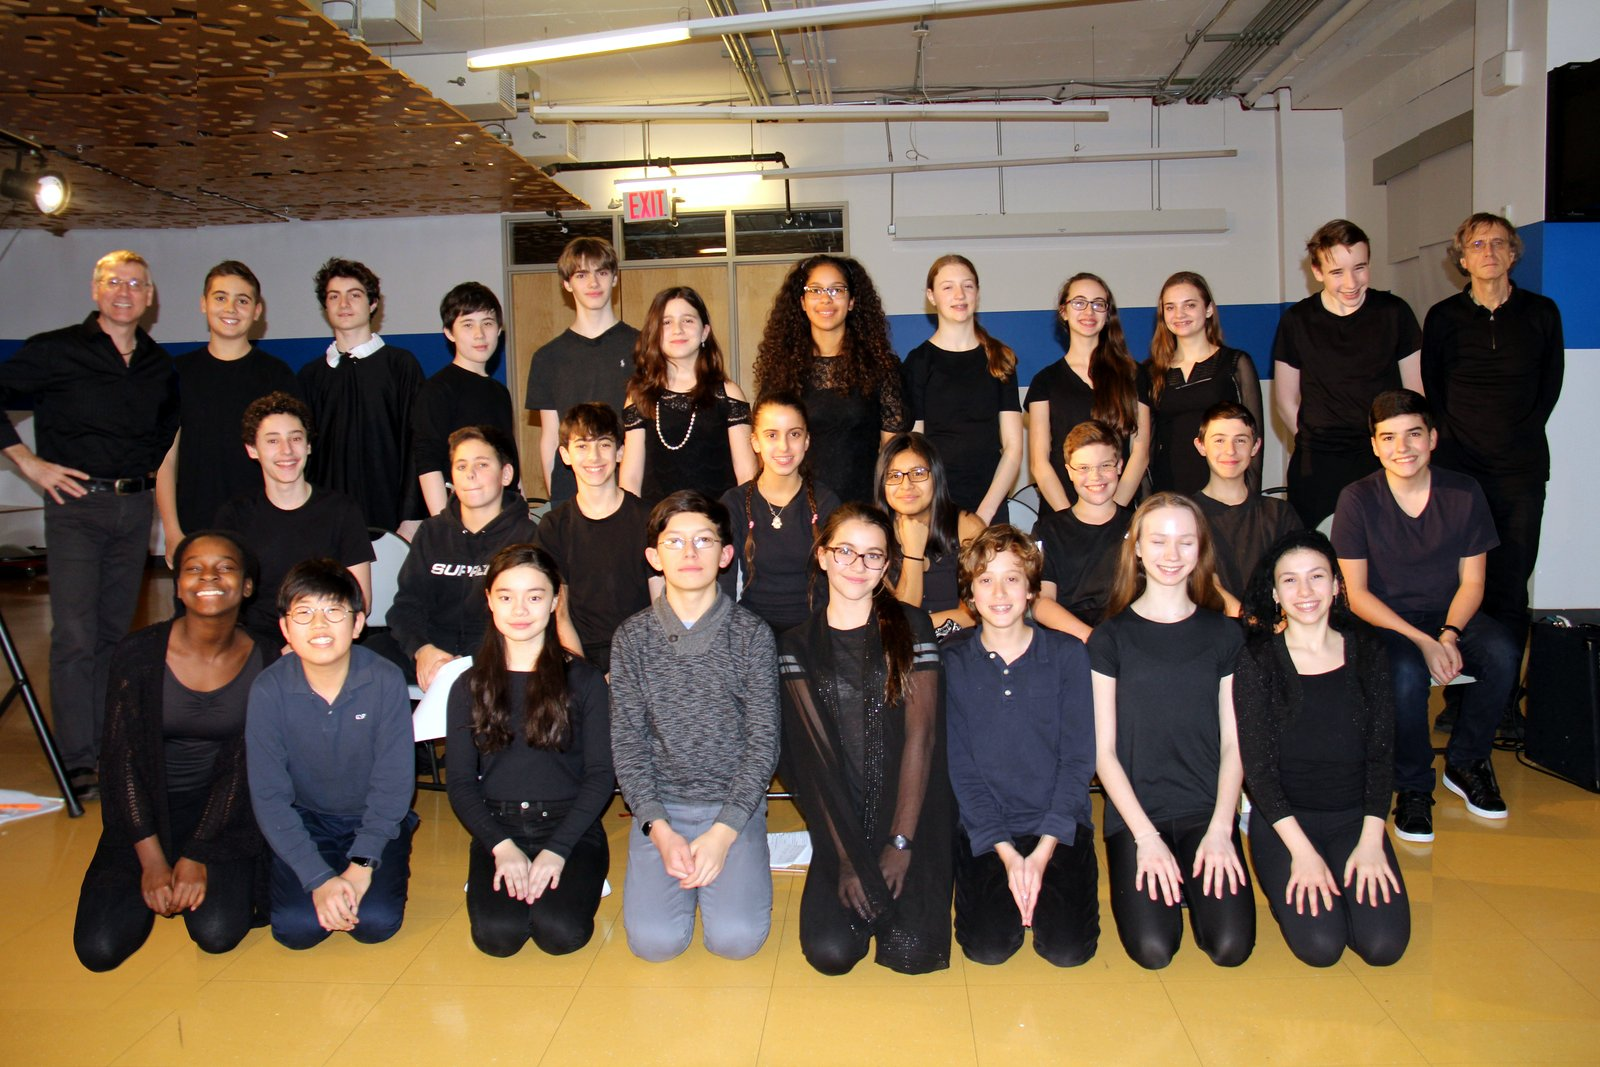 IMG_2292_Macbeth cast picture with Paul from 2295 and Rik from 2296.jpg